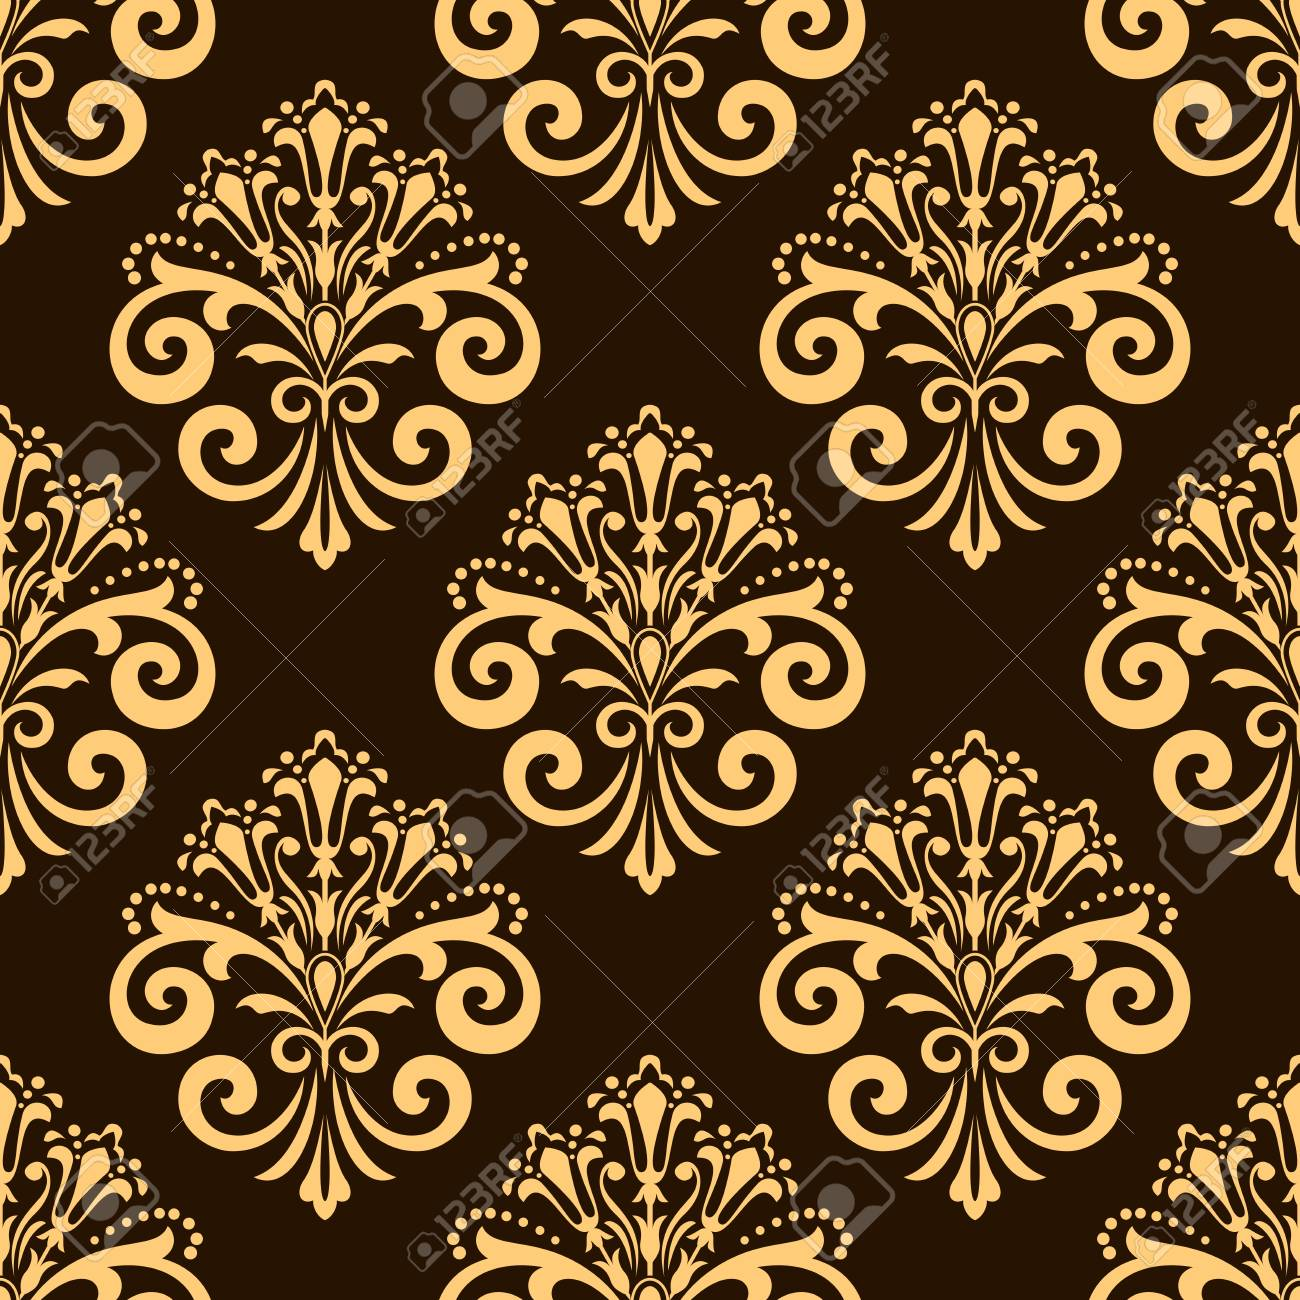 Wallpaper In The Style Of Baroque Dark Brown And Gold Floral